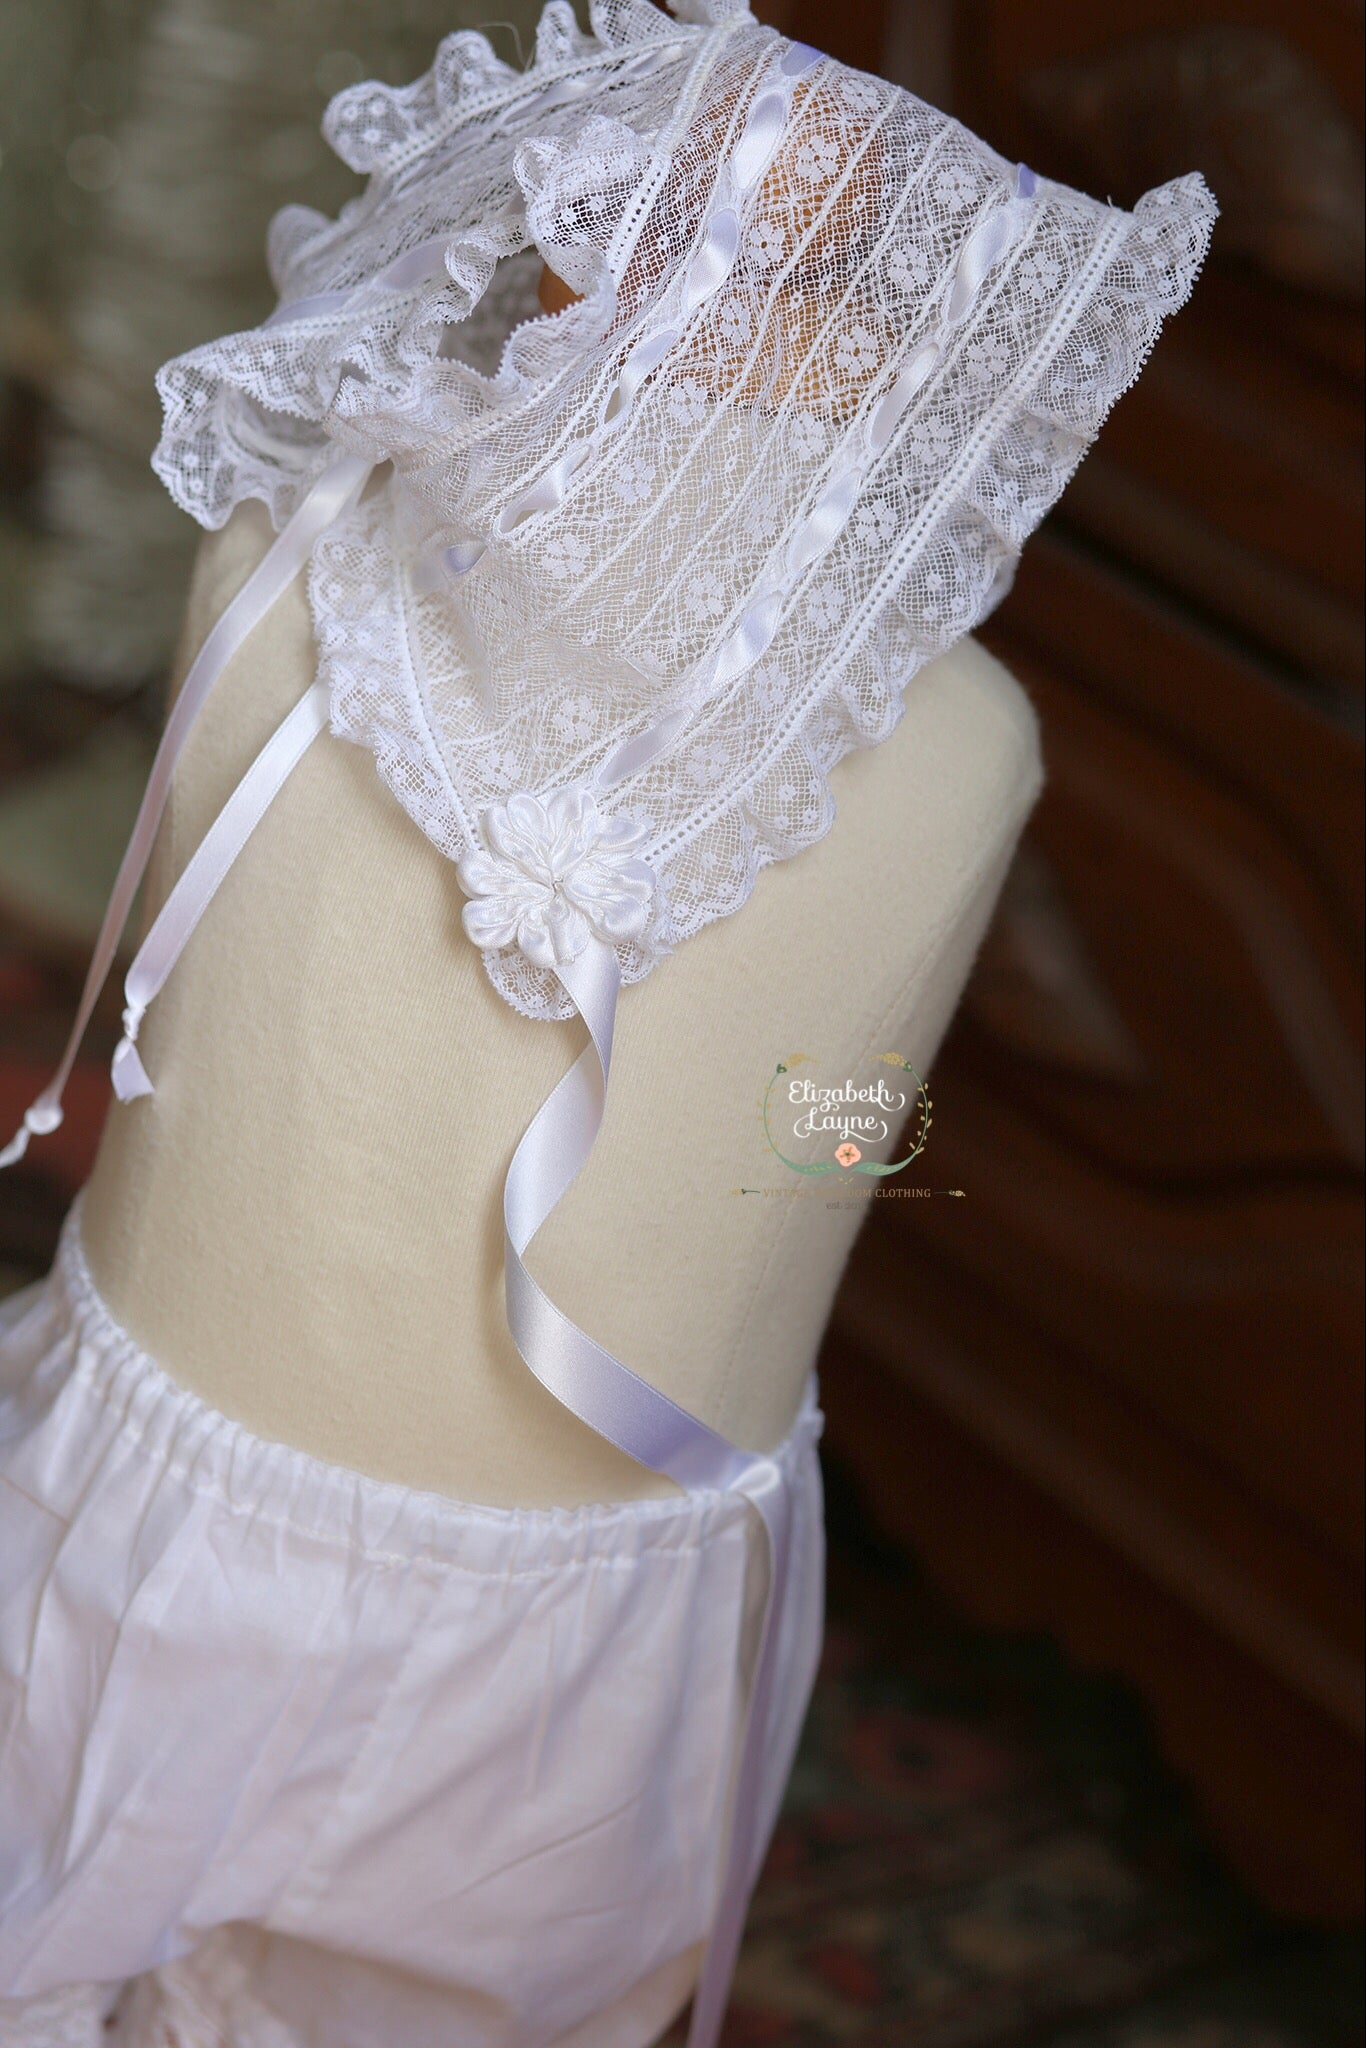 Image of French Lace Bonnet & Lace Bloomer Set